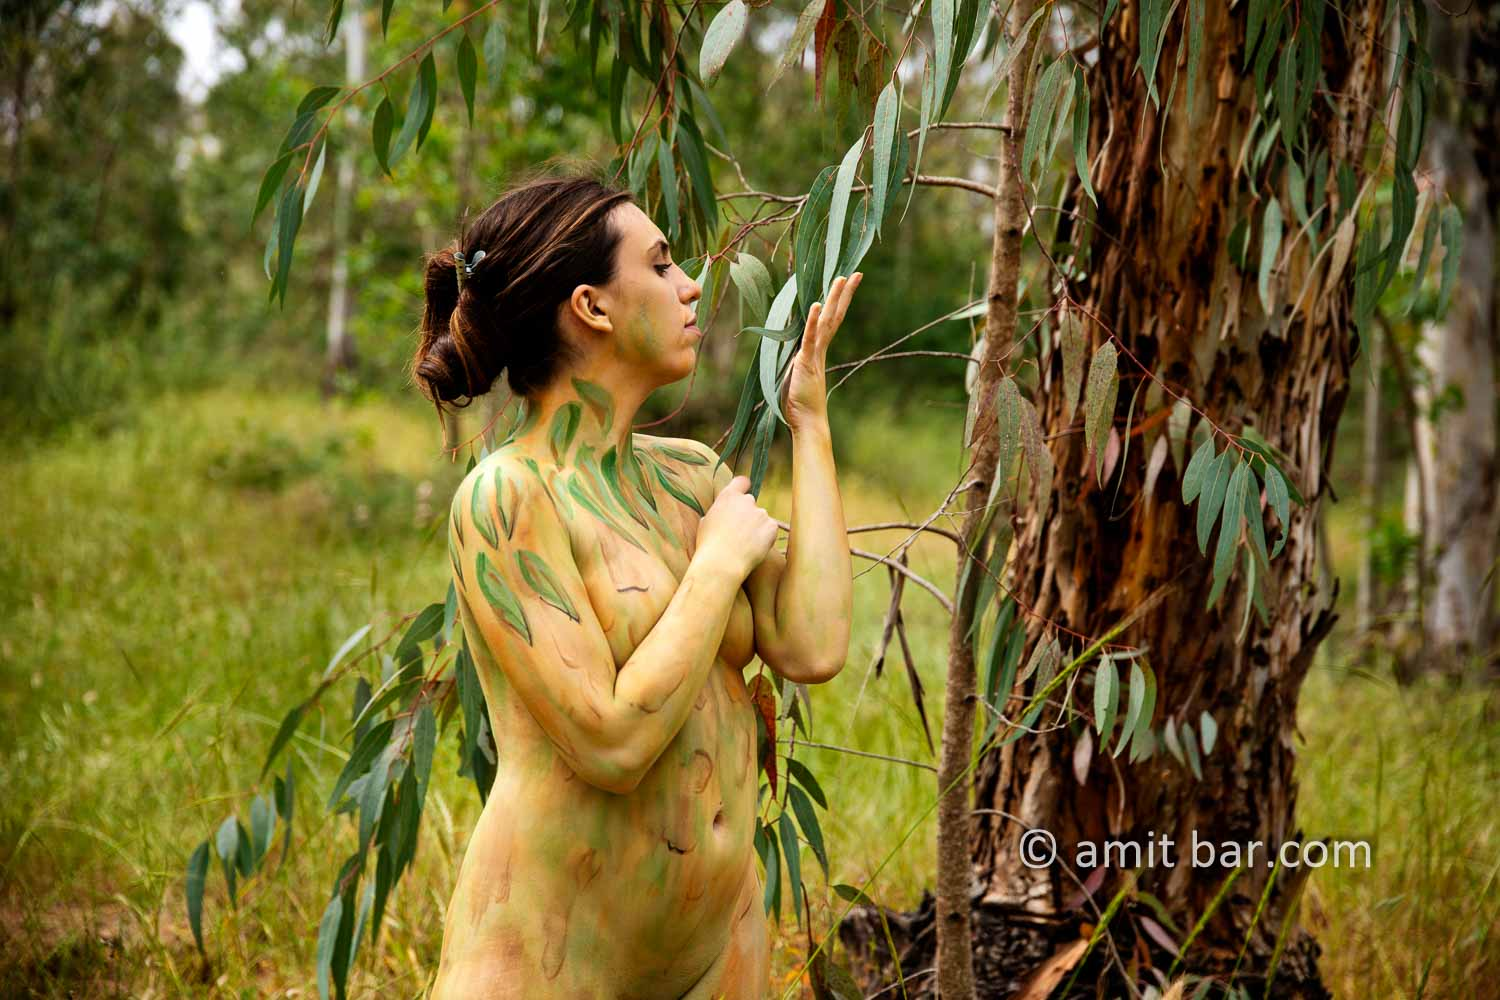 Eucalyptus grove I: Body-painted model in eucalyptus grove